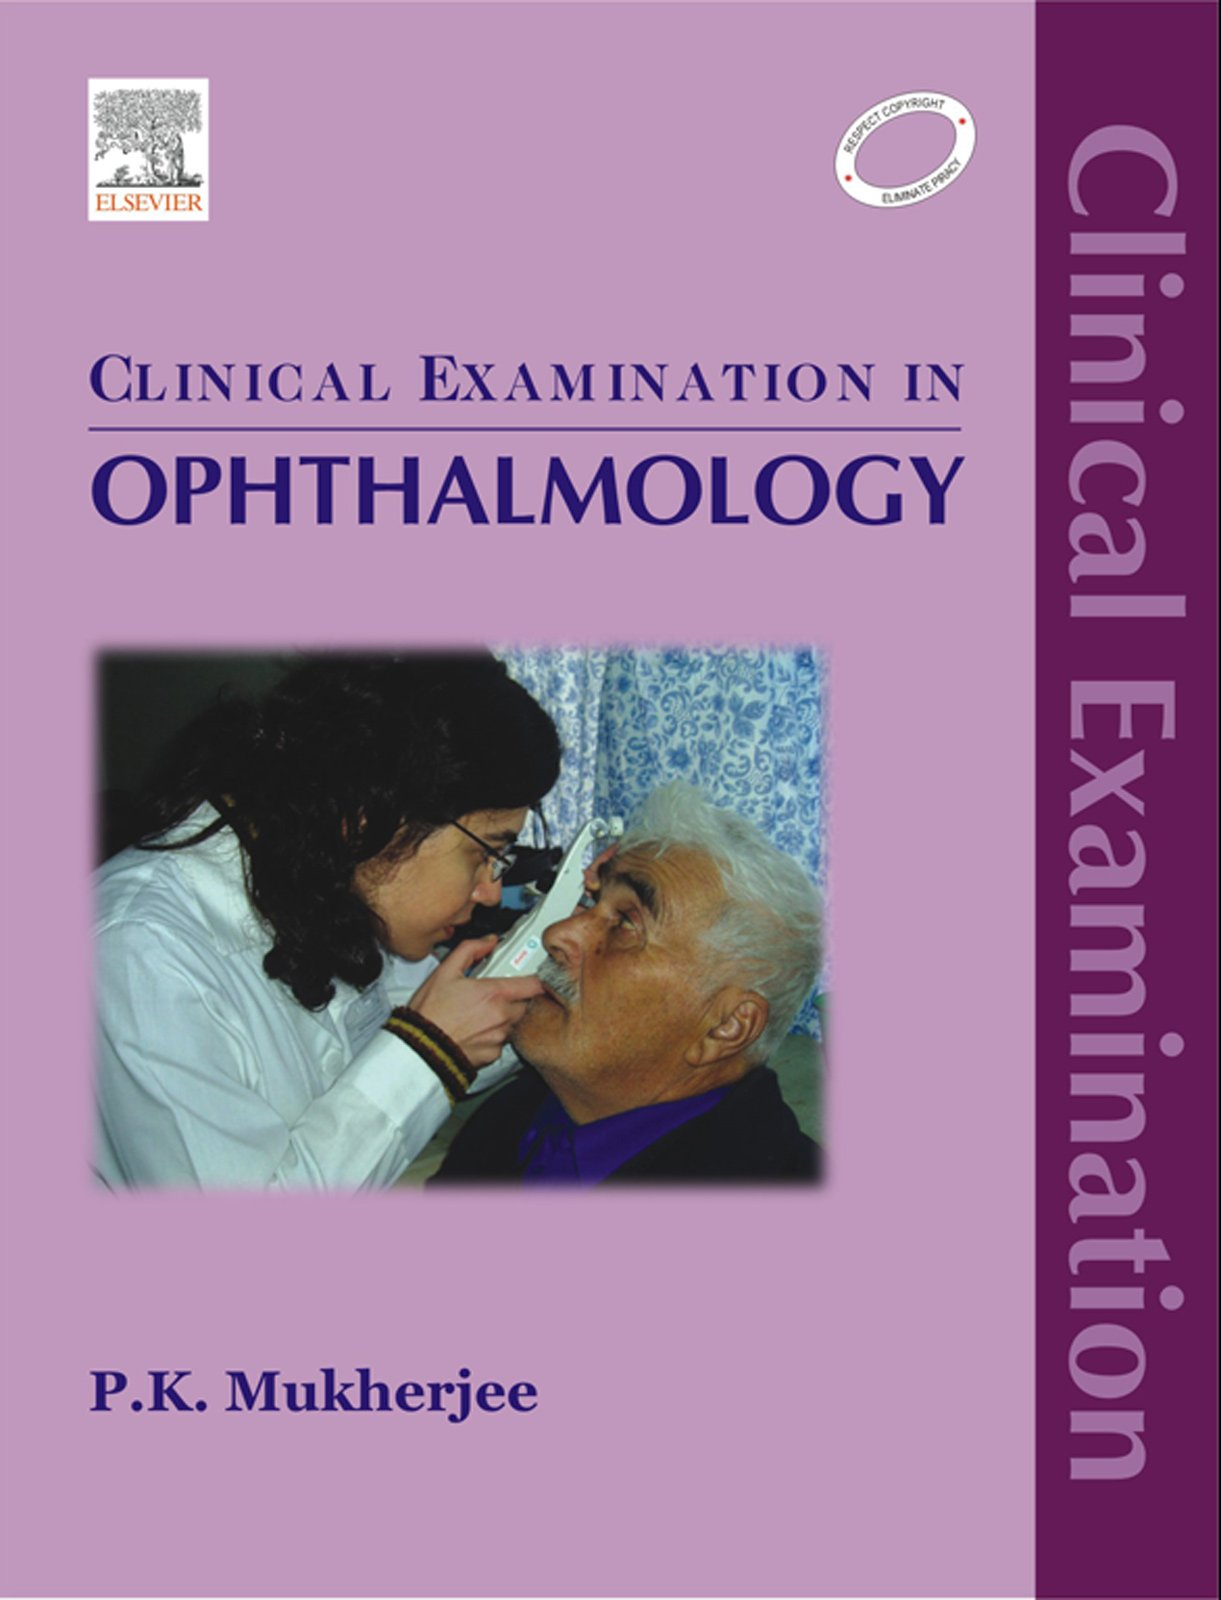 Amazon.in: Buy Clinical Examination in Ophthalmology Book Online at ...